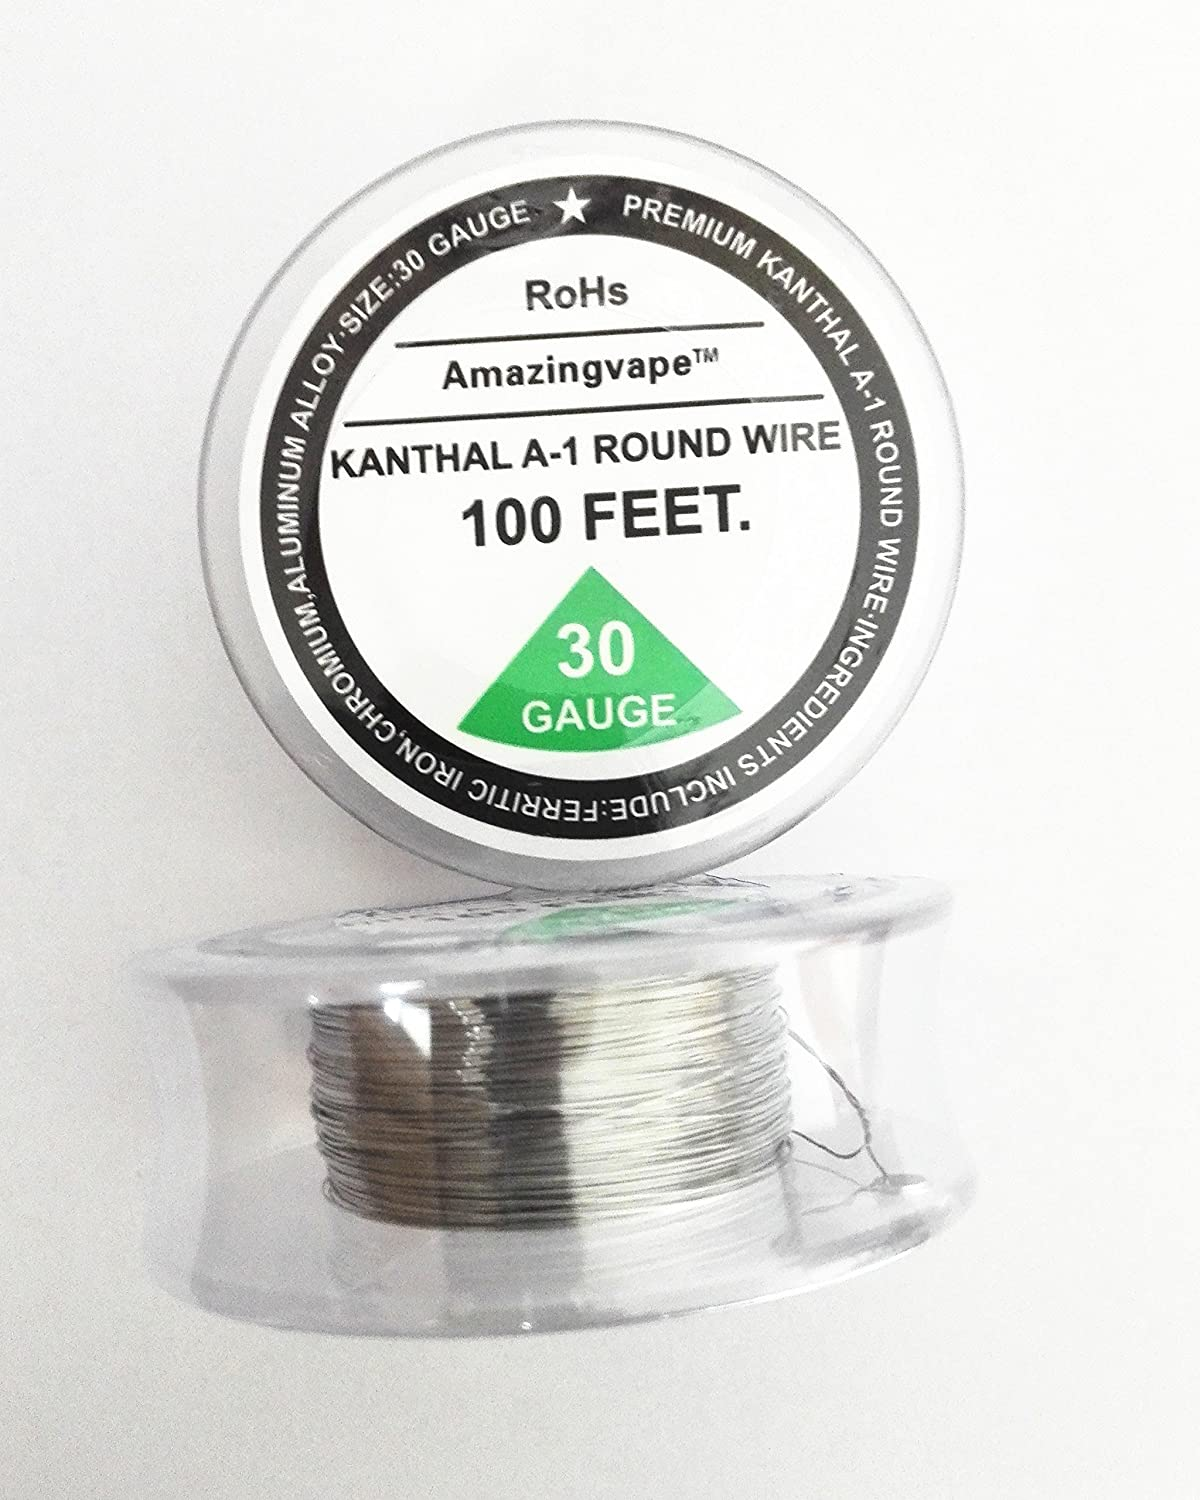 6 Pack Mixed 22, 24, 26, 28, 30, 32 Gauge AWG KA1 resistance wire ...